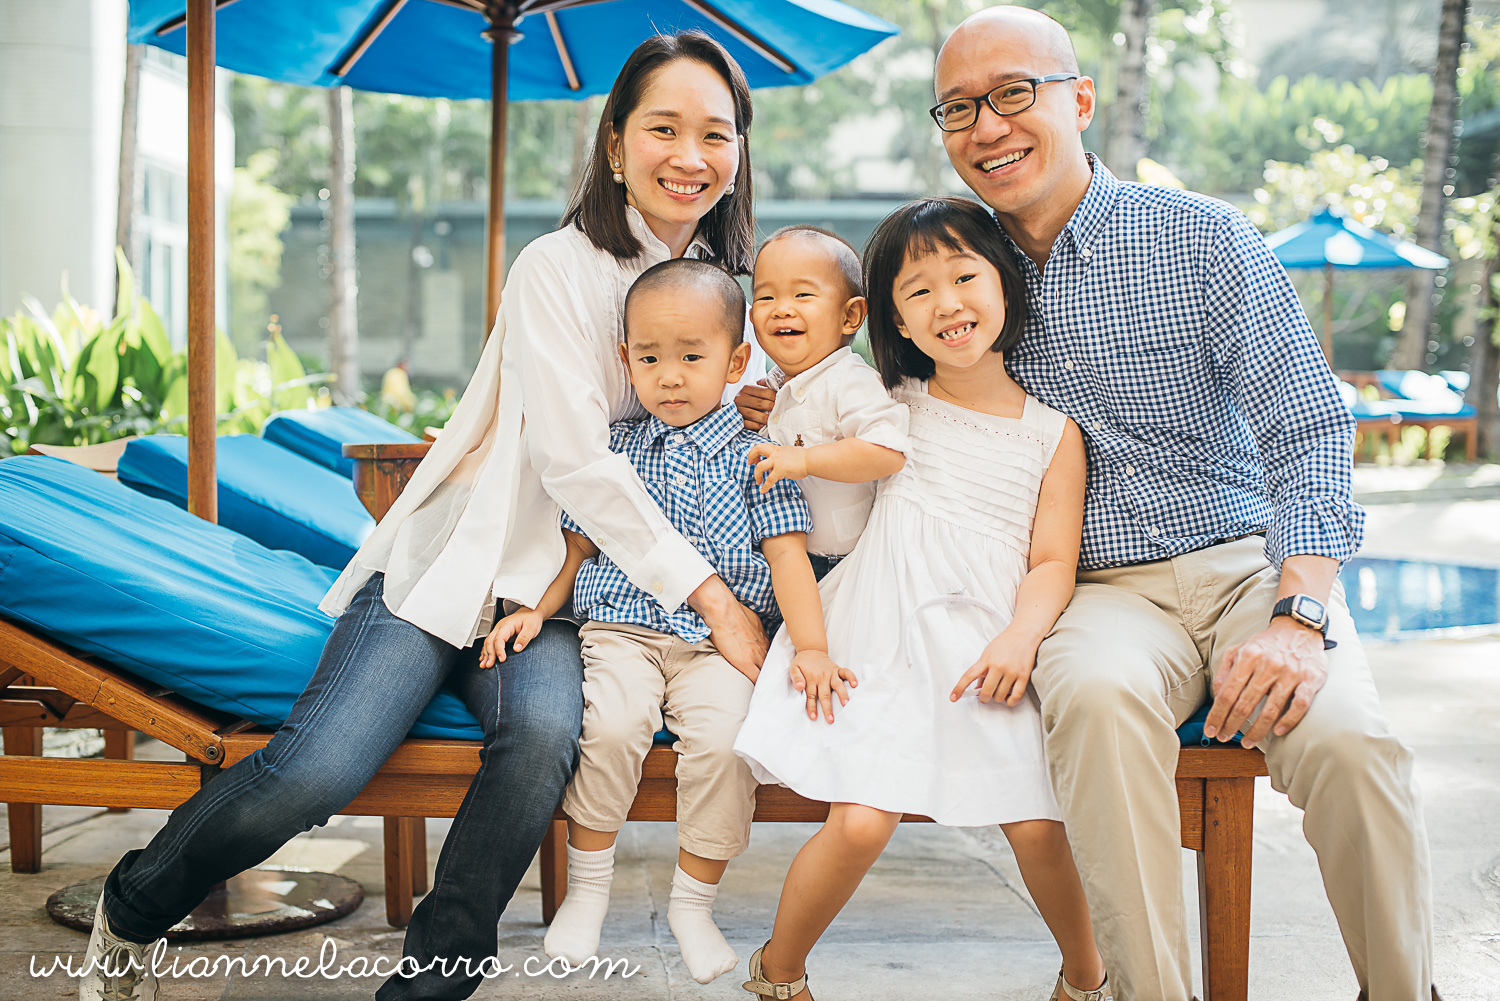 Dychiao Family - Manila Fashion Observer - Christine Dychiao - Family Lifestyle Photography by Lianne Bacorro-31